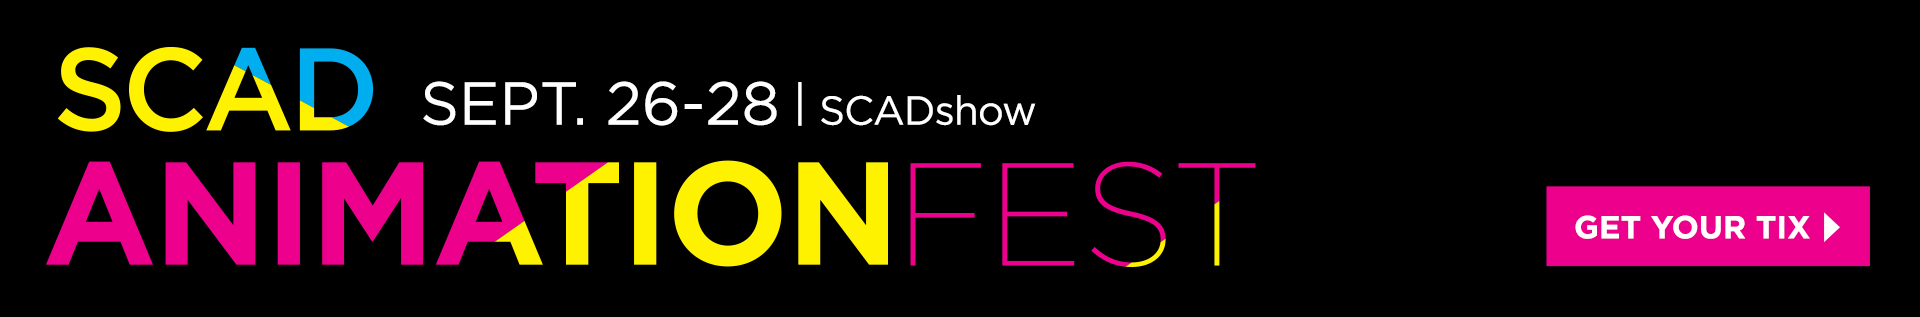 SCAD AnimationFest banner